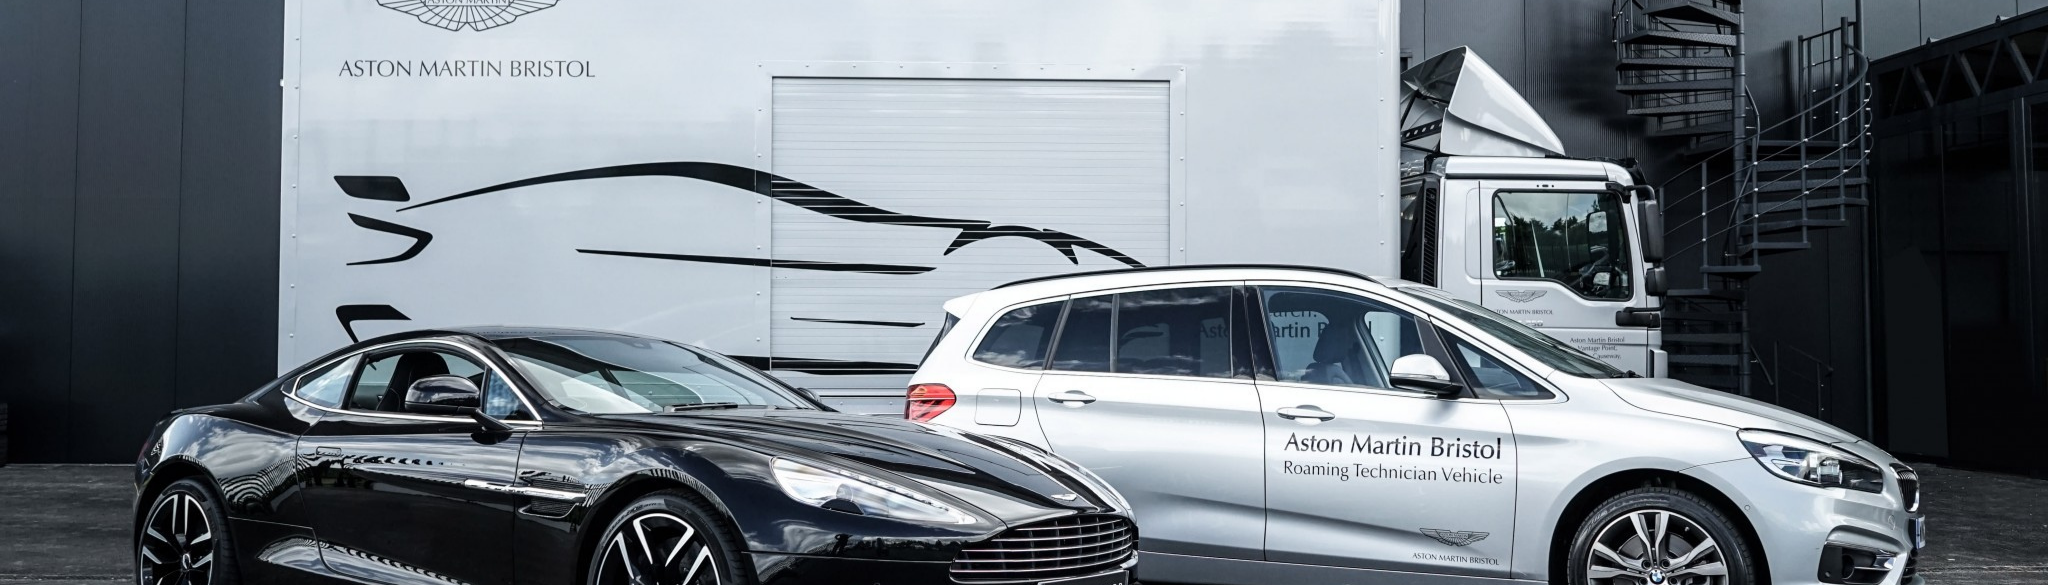 Aston Martin Collection And Delivery